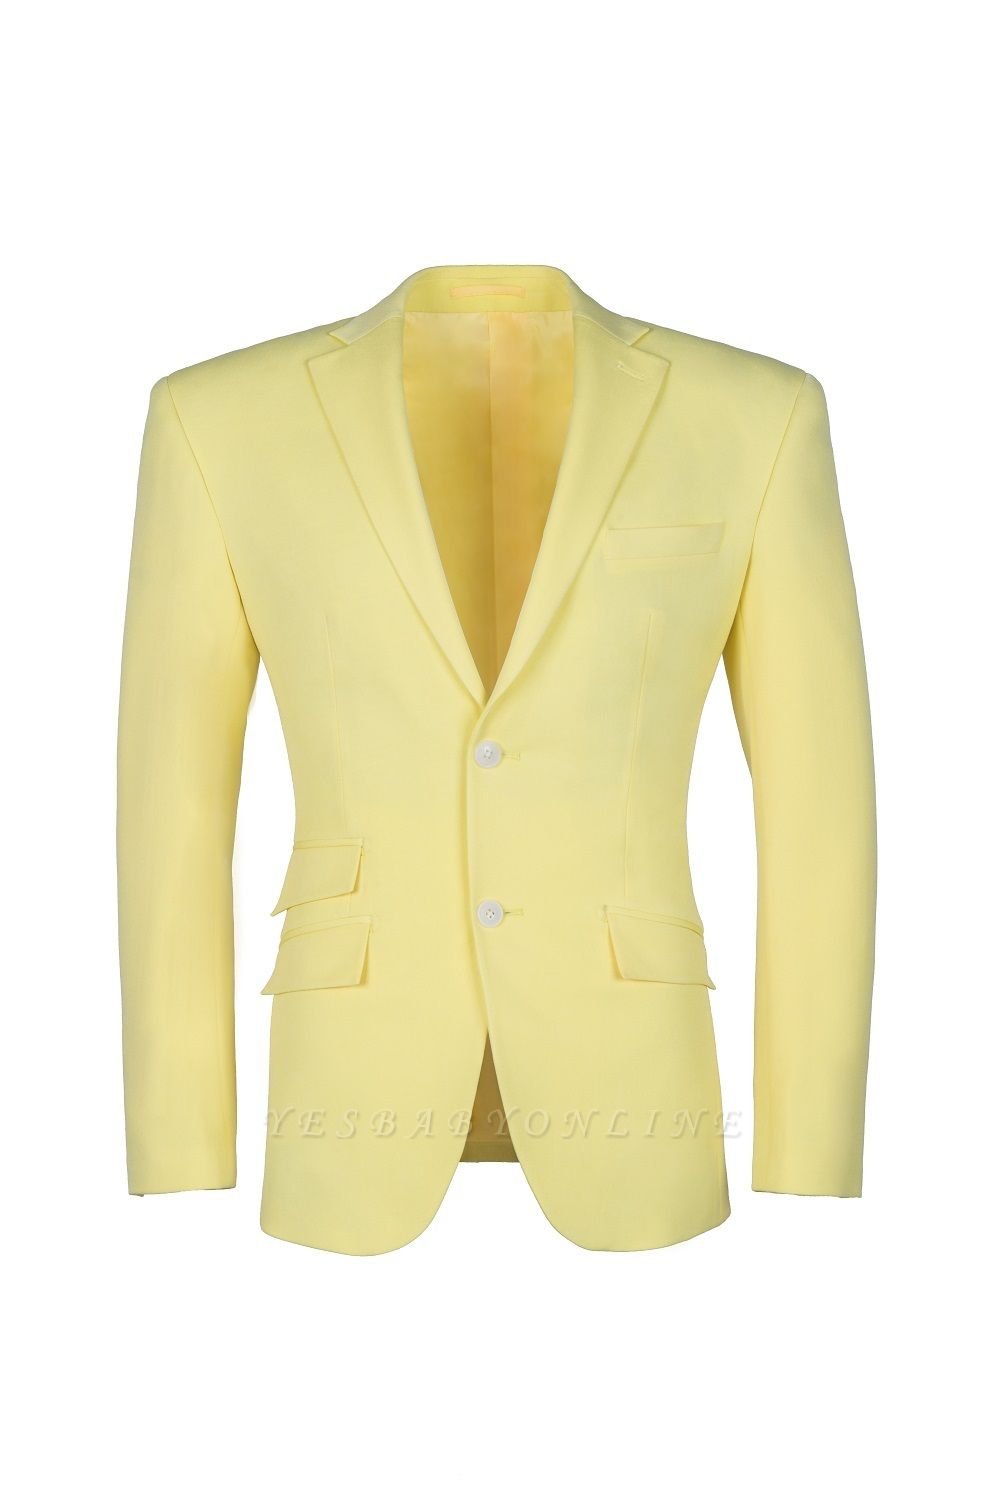 High Quality Peak Lapel Groomsmen Slim Fit Daffodil Single Breasted